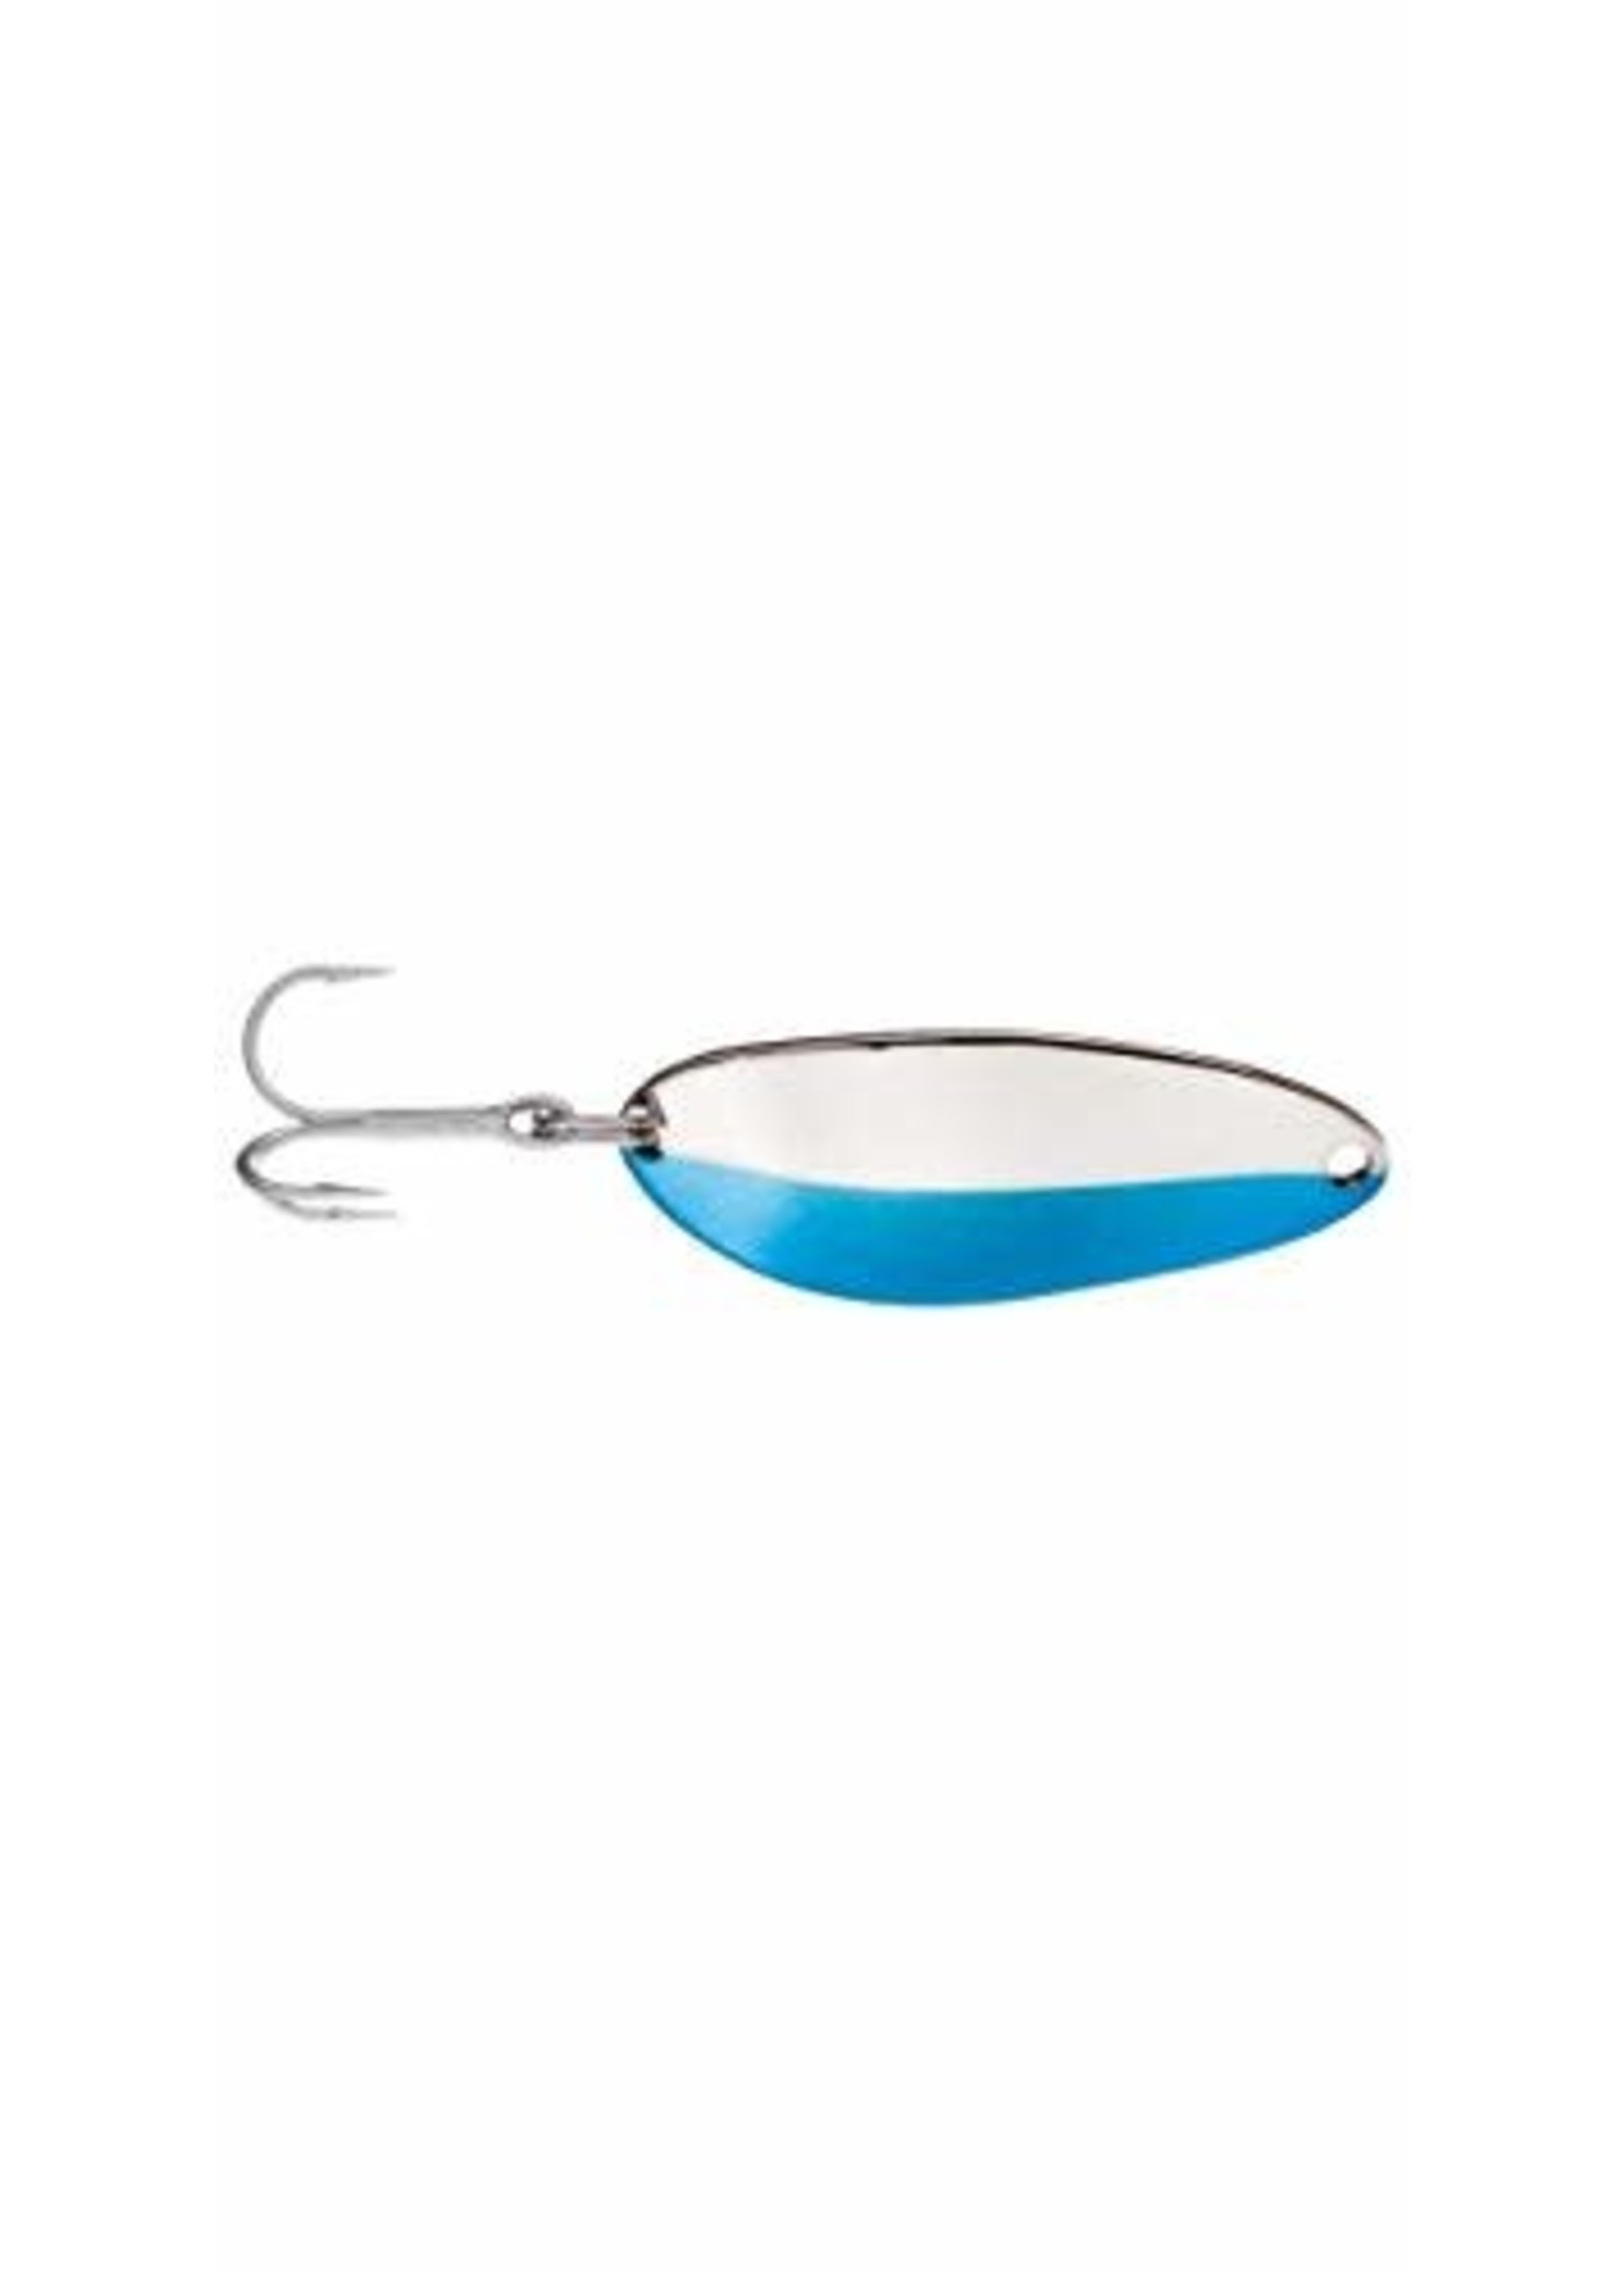 Acme Tackle Acme Little Cleo Spoon